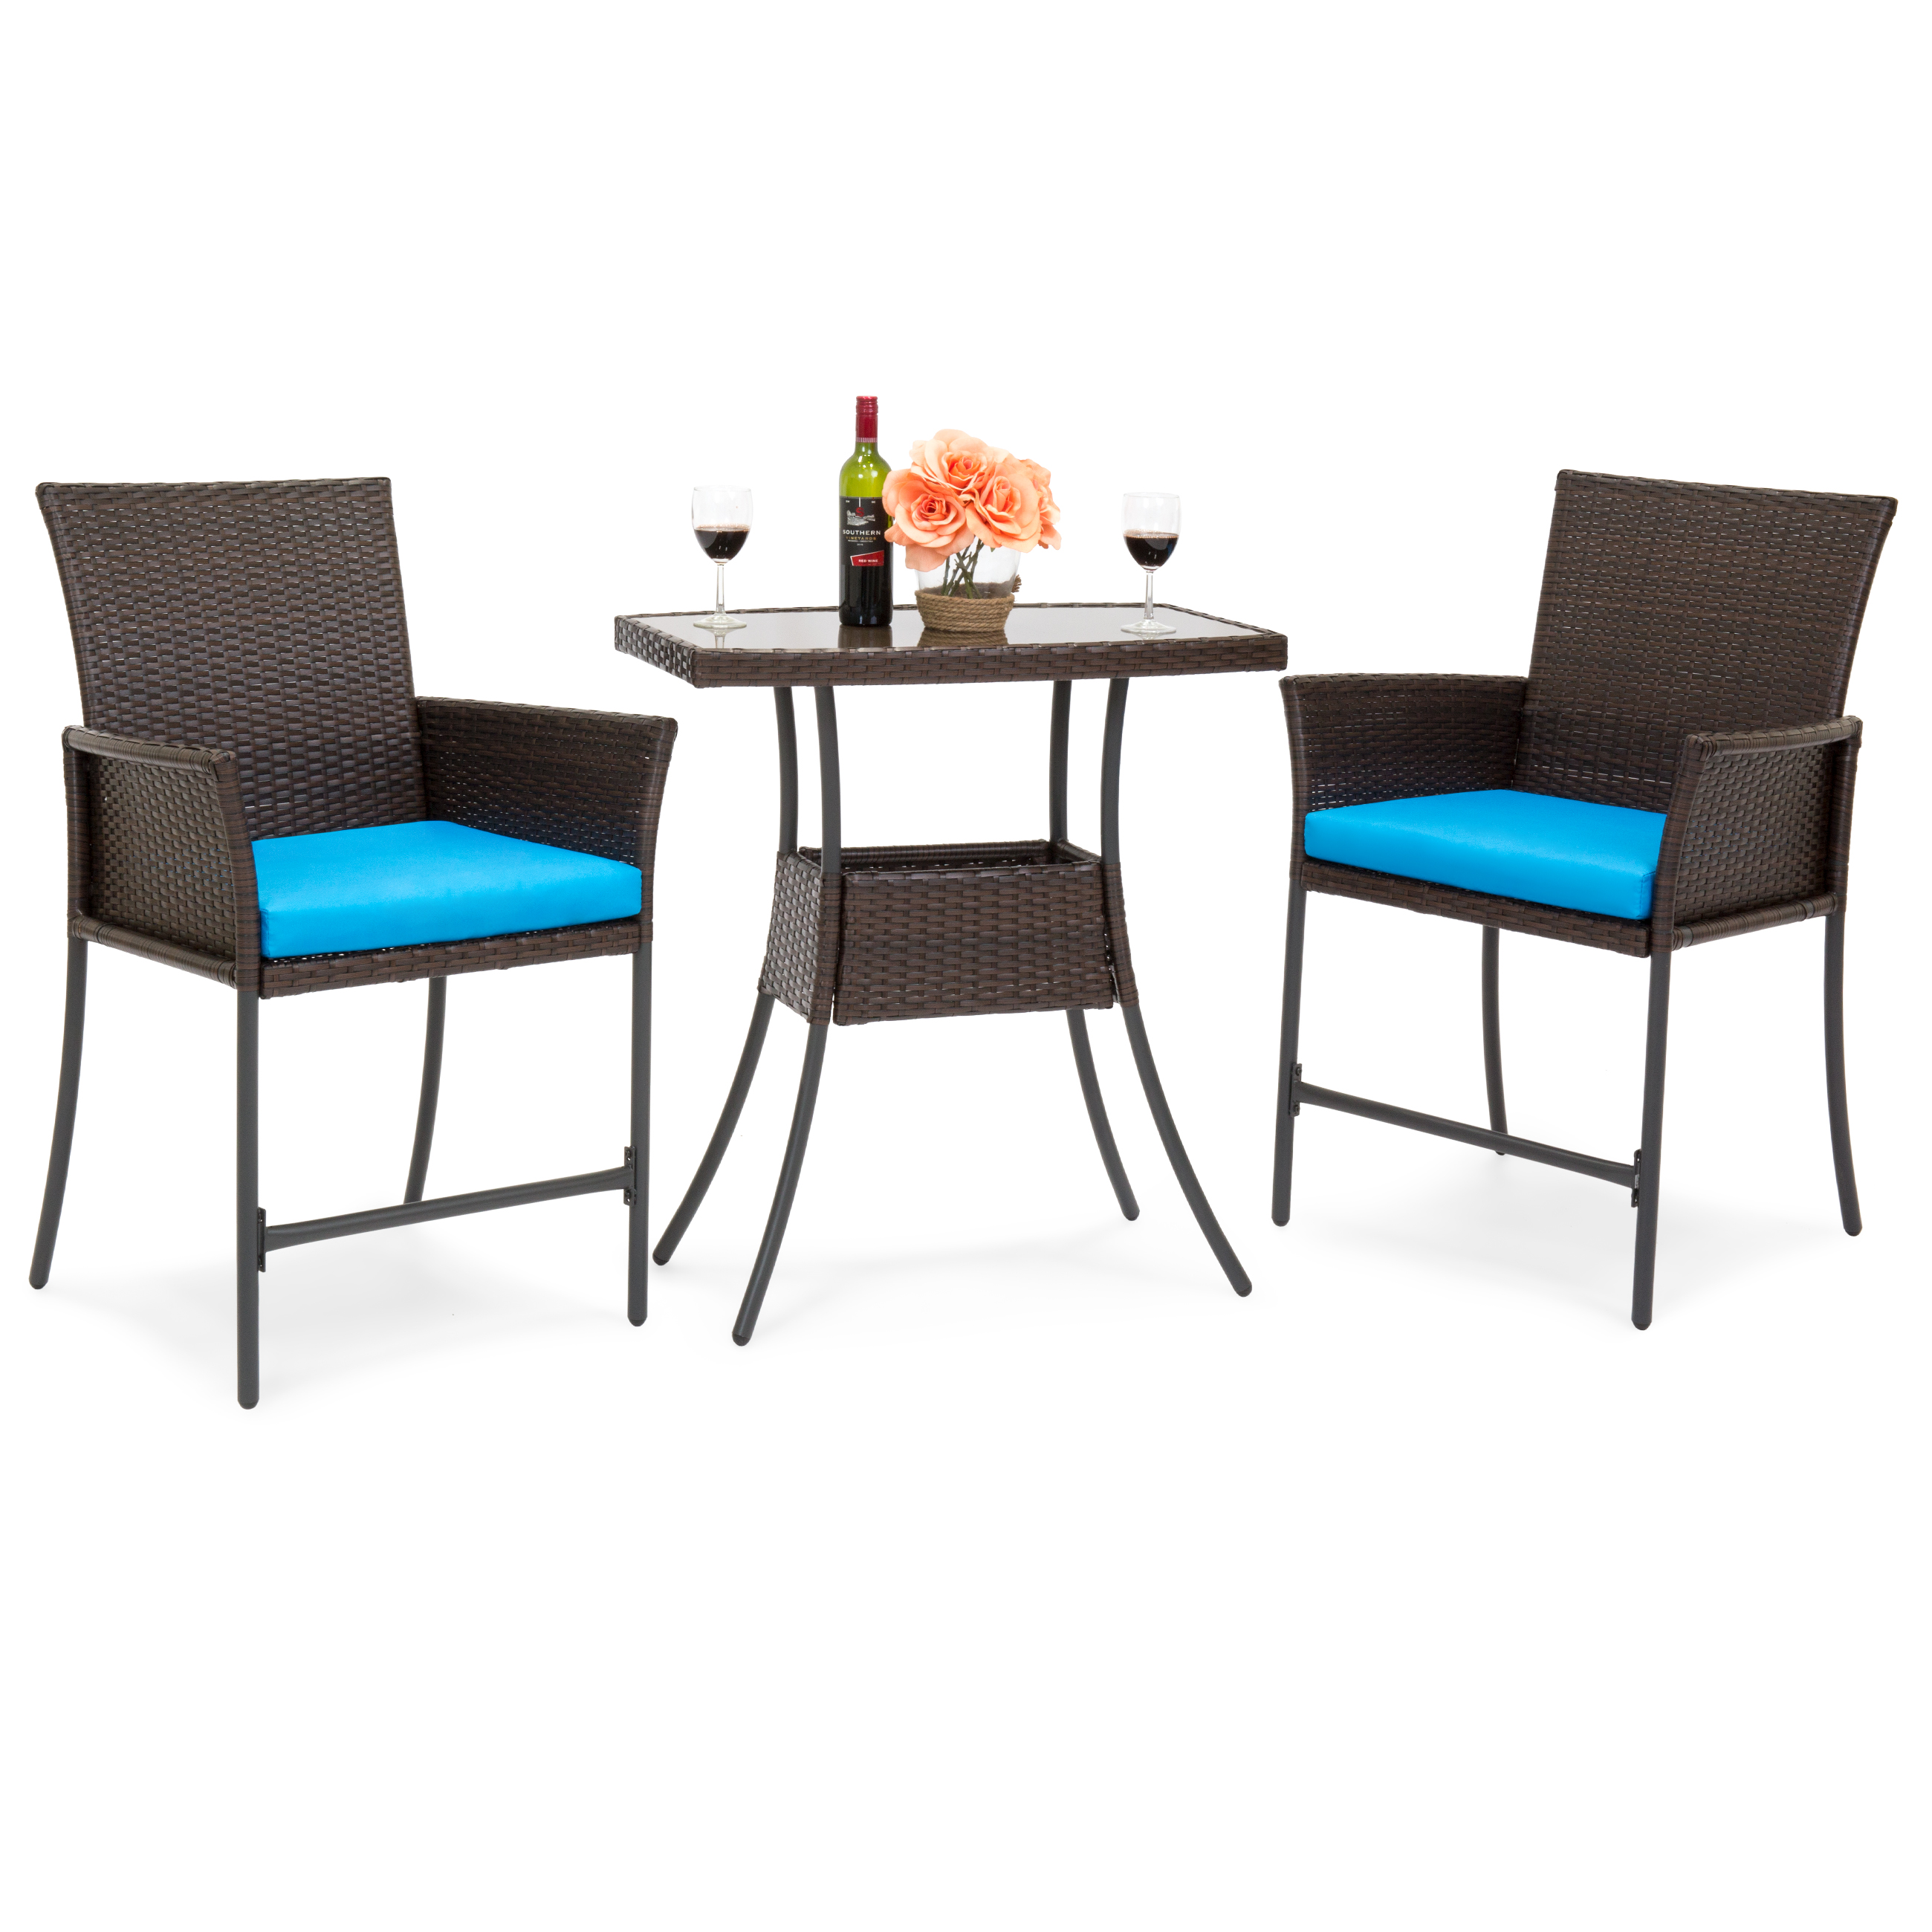 Best Choice Products 3-Piece Patio Wicker Bistro Set w/ Glass Top